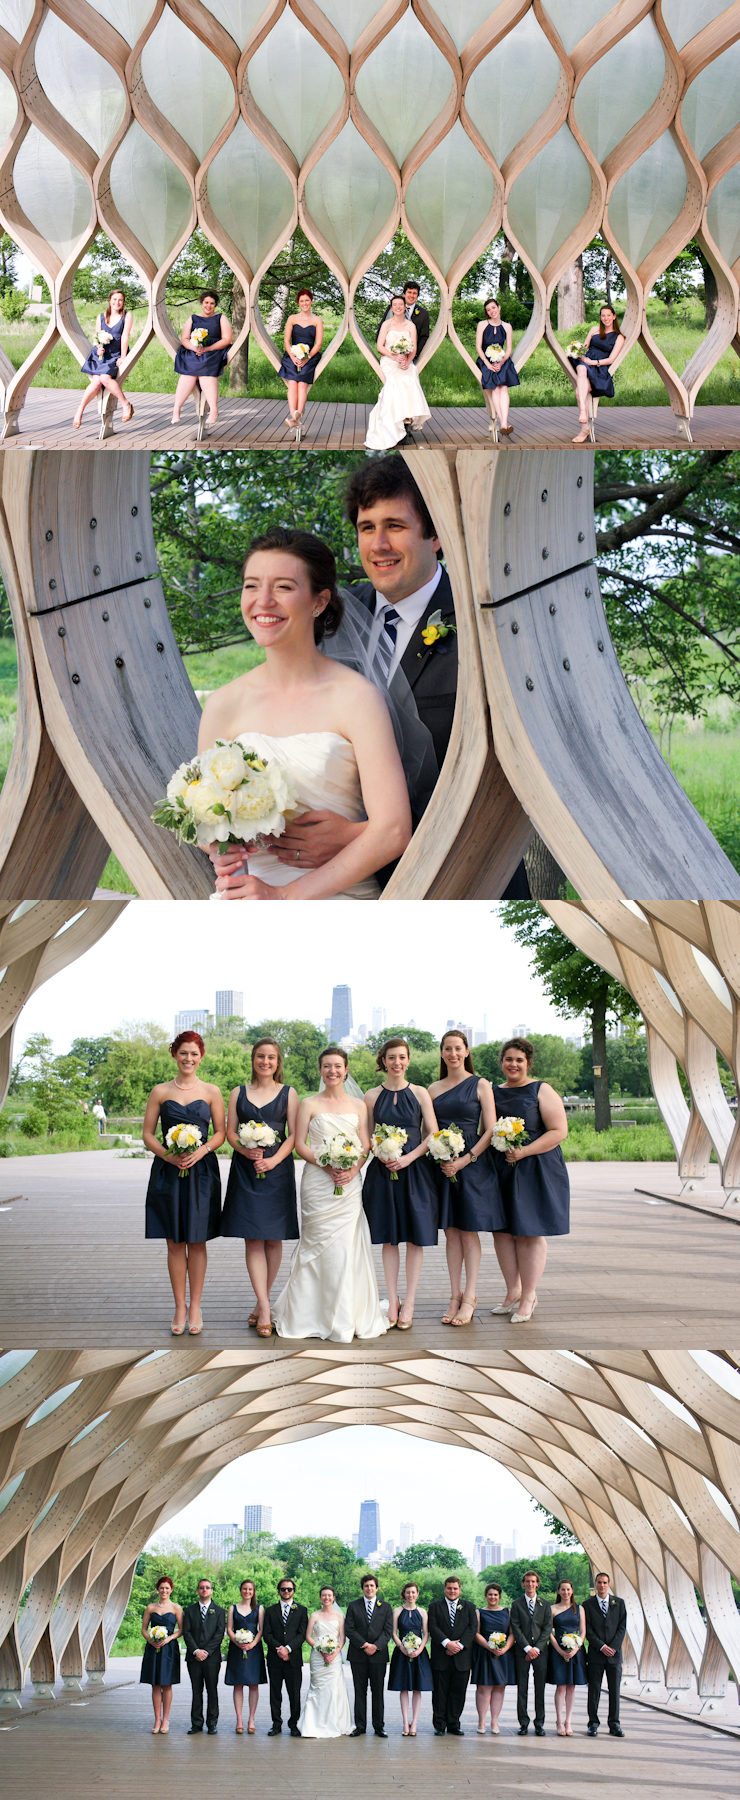 CD-Bridal-Party-Wedding-South-Pond-Lincoln-Park